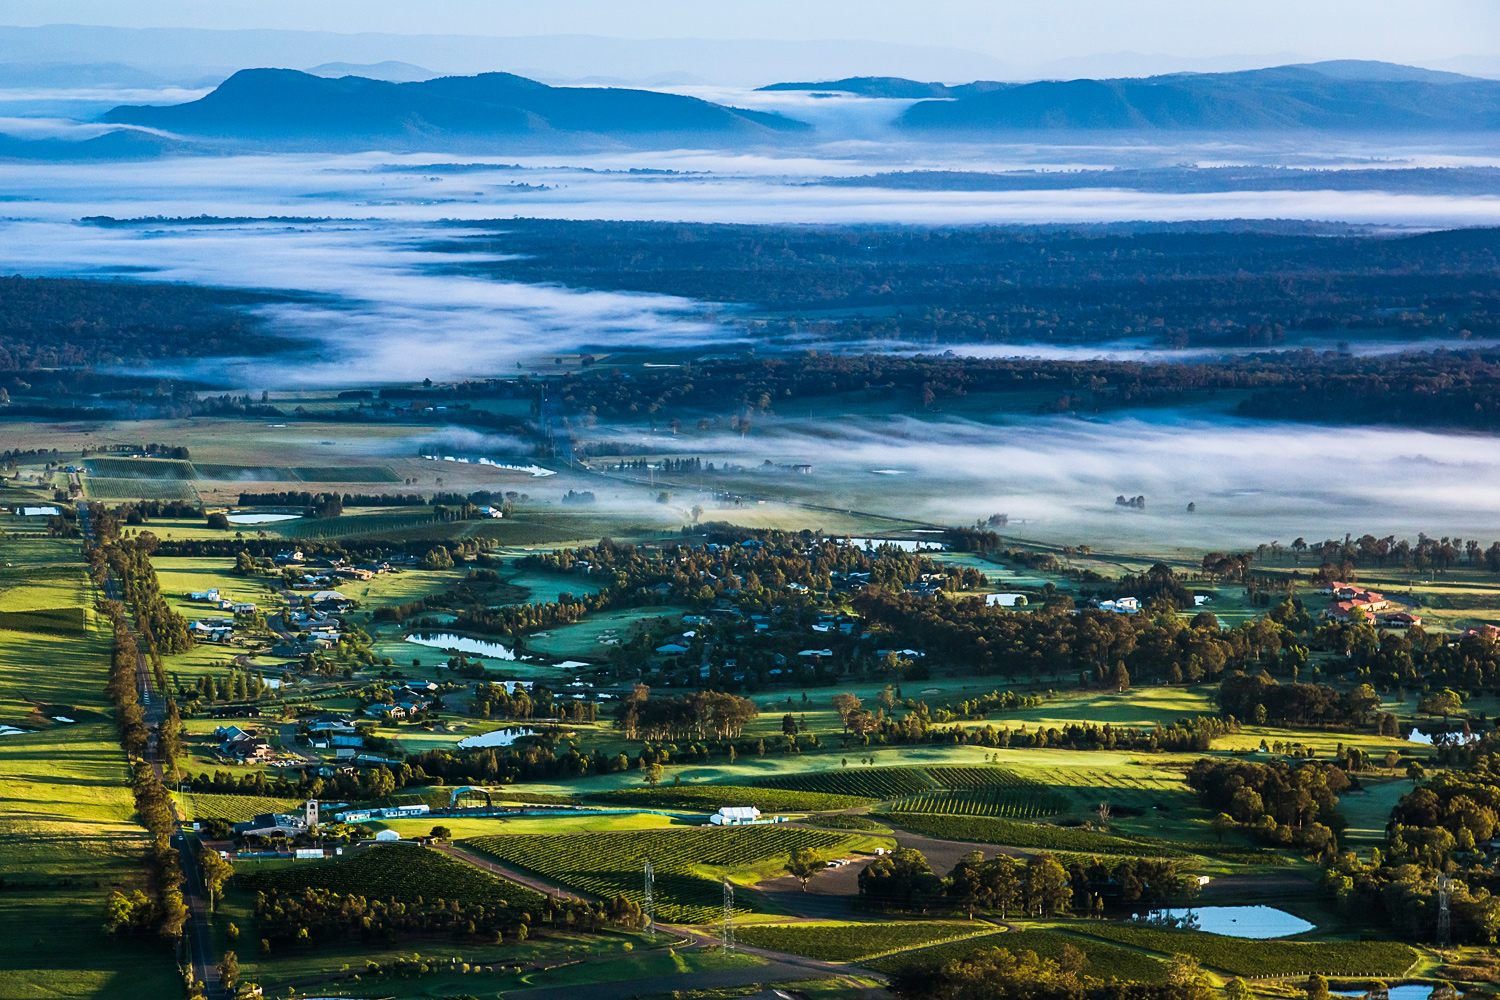 Ballooning in Australia's Hunter Valley